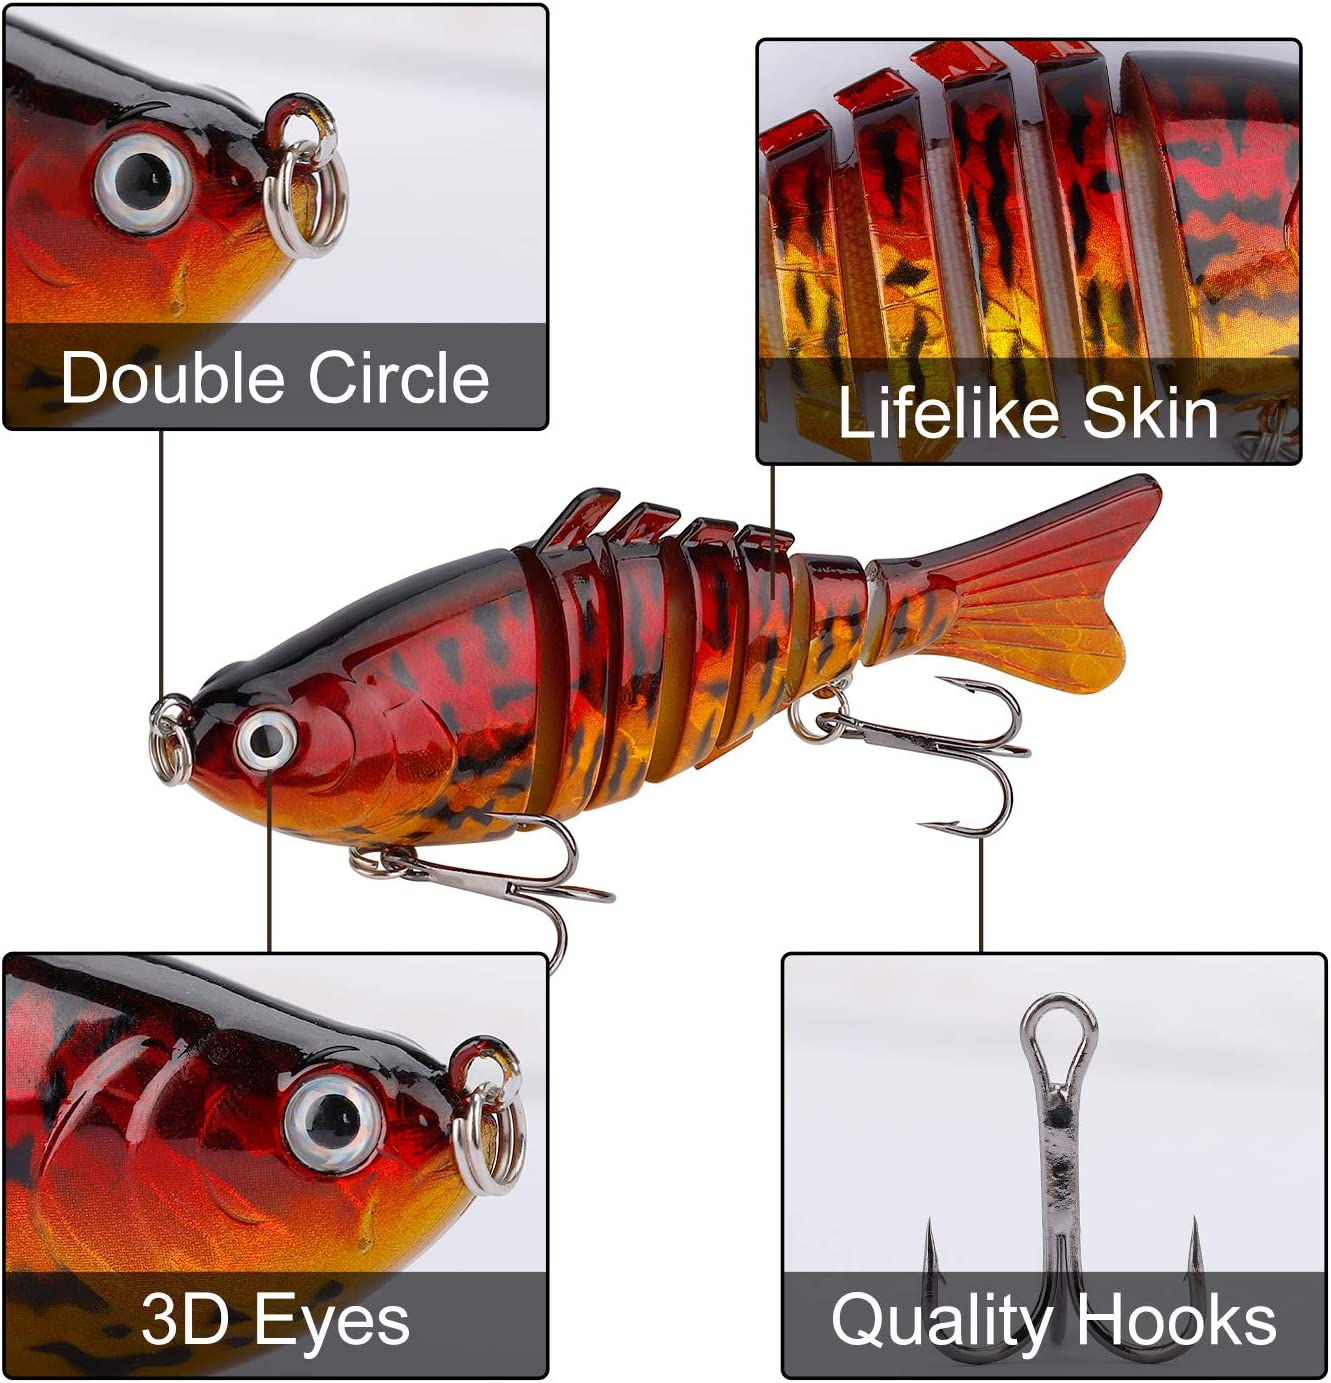 QIMEI-SHOP Fishing Lures Artificial Bionic Baits Lifelike Multi Jointed Swimming Lures with Hard Treble Fishing Hooks for Pike Bass Trout Perch Predatory Fish 2PCS